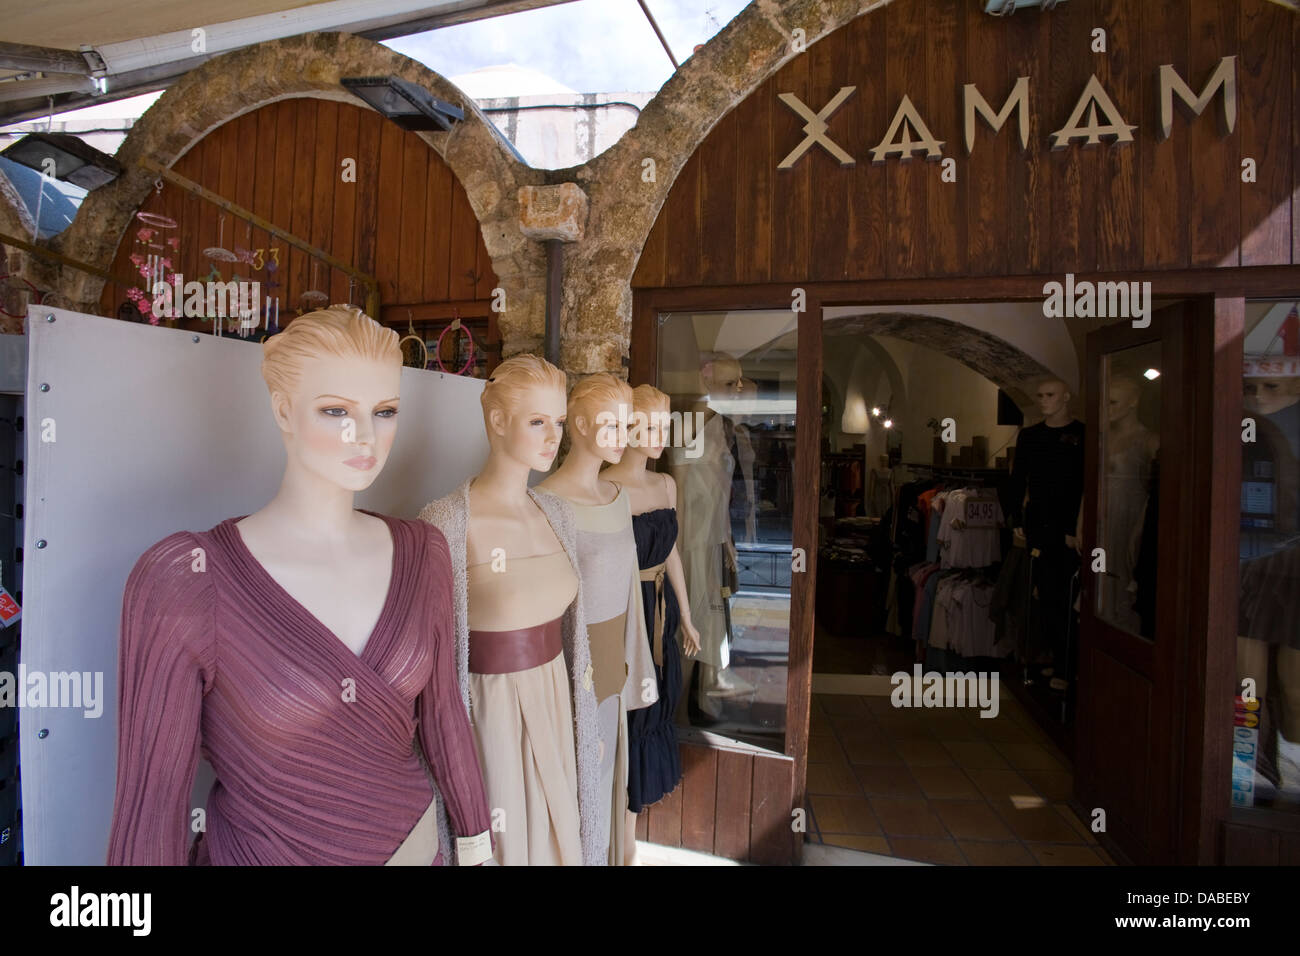 There are quite a number of upscale establishments among the maze of tourist shops in Chania, Crete, Greece. - Stock Image